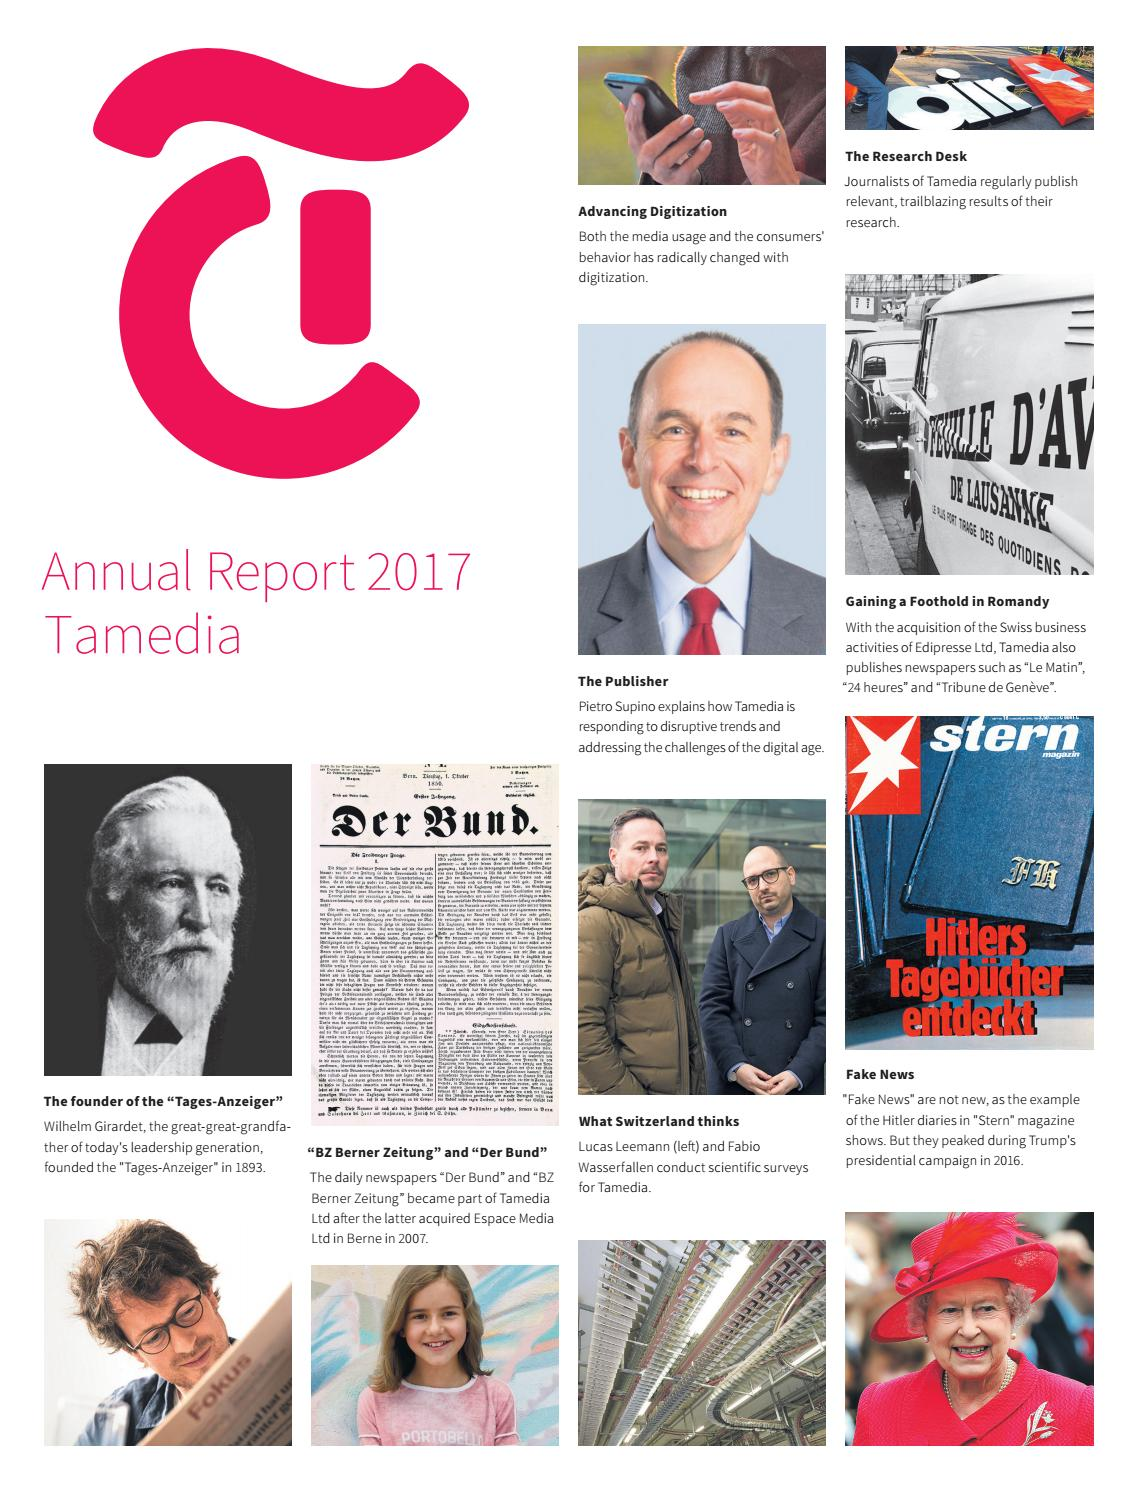 tamedia annual report 2017 by tamedia issuu  grose lehrlingsoffensive auf joinvision com #6